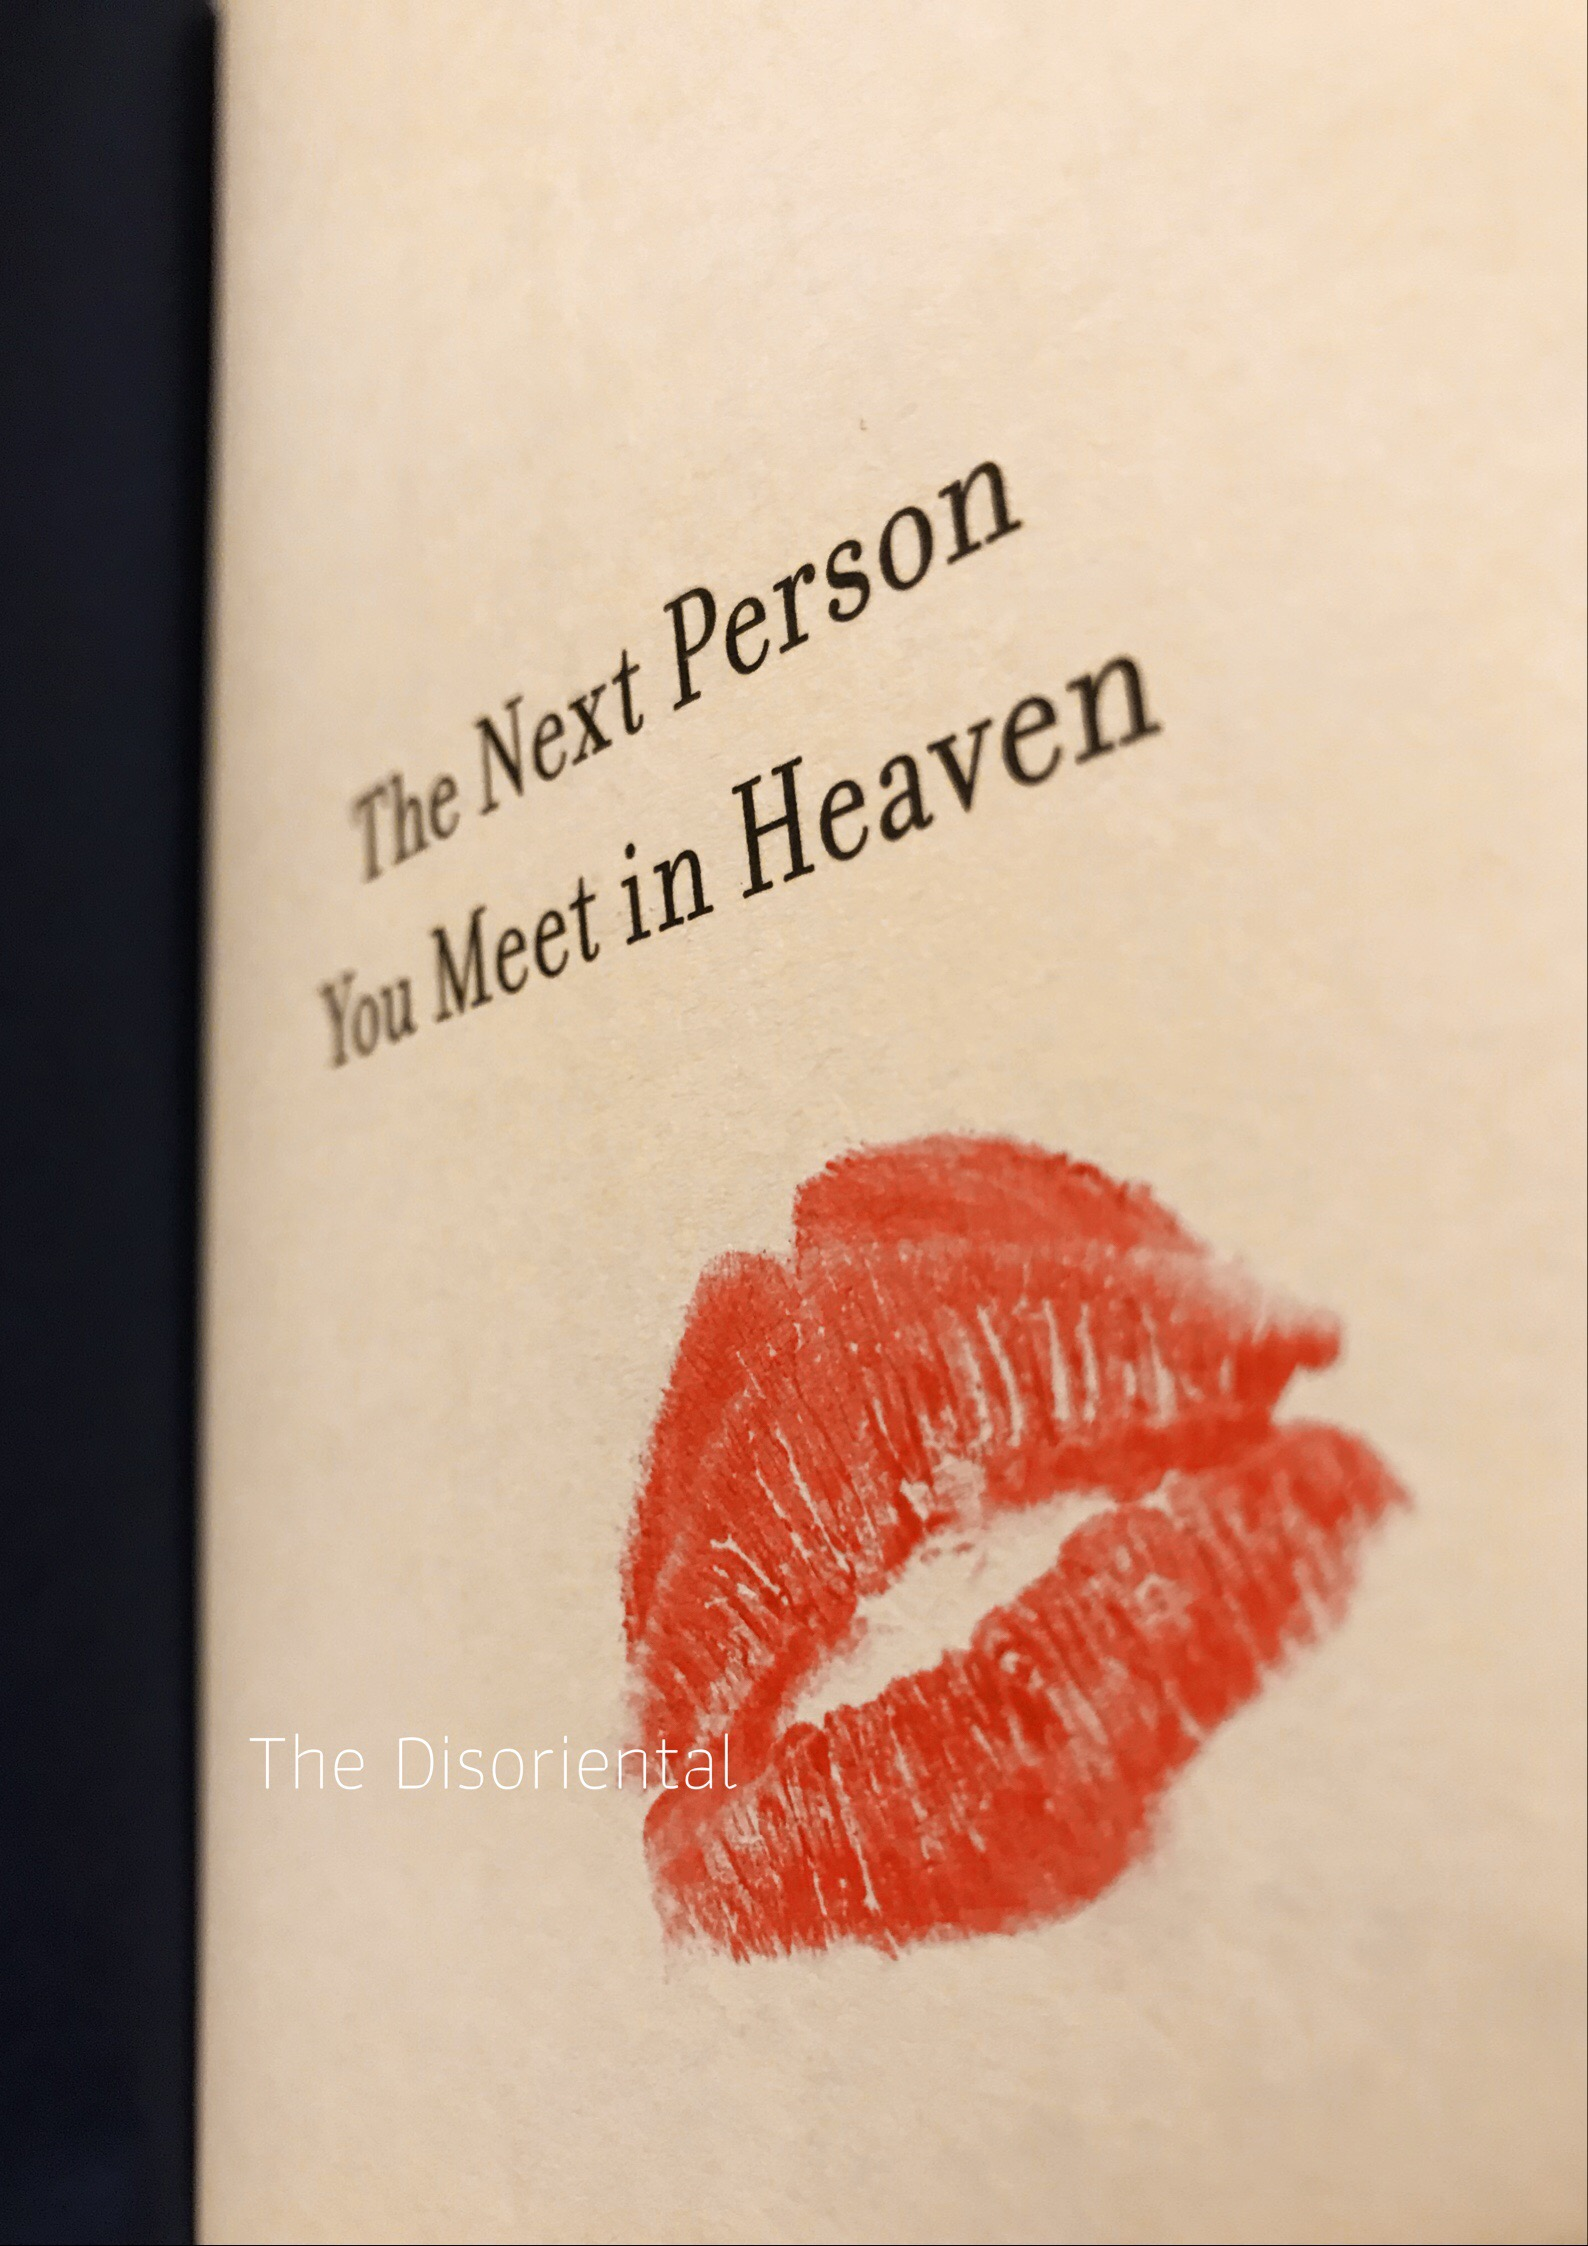 The Next Person in Heaven-ASMR